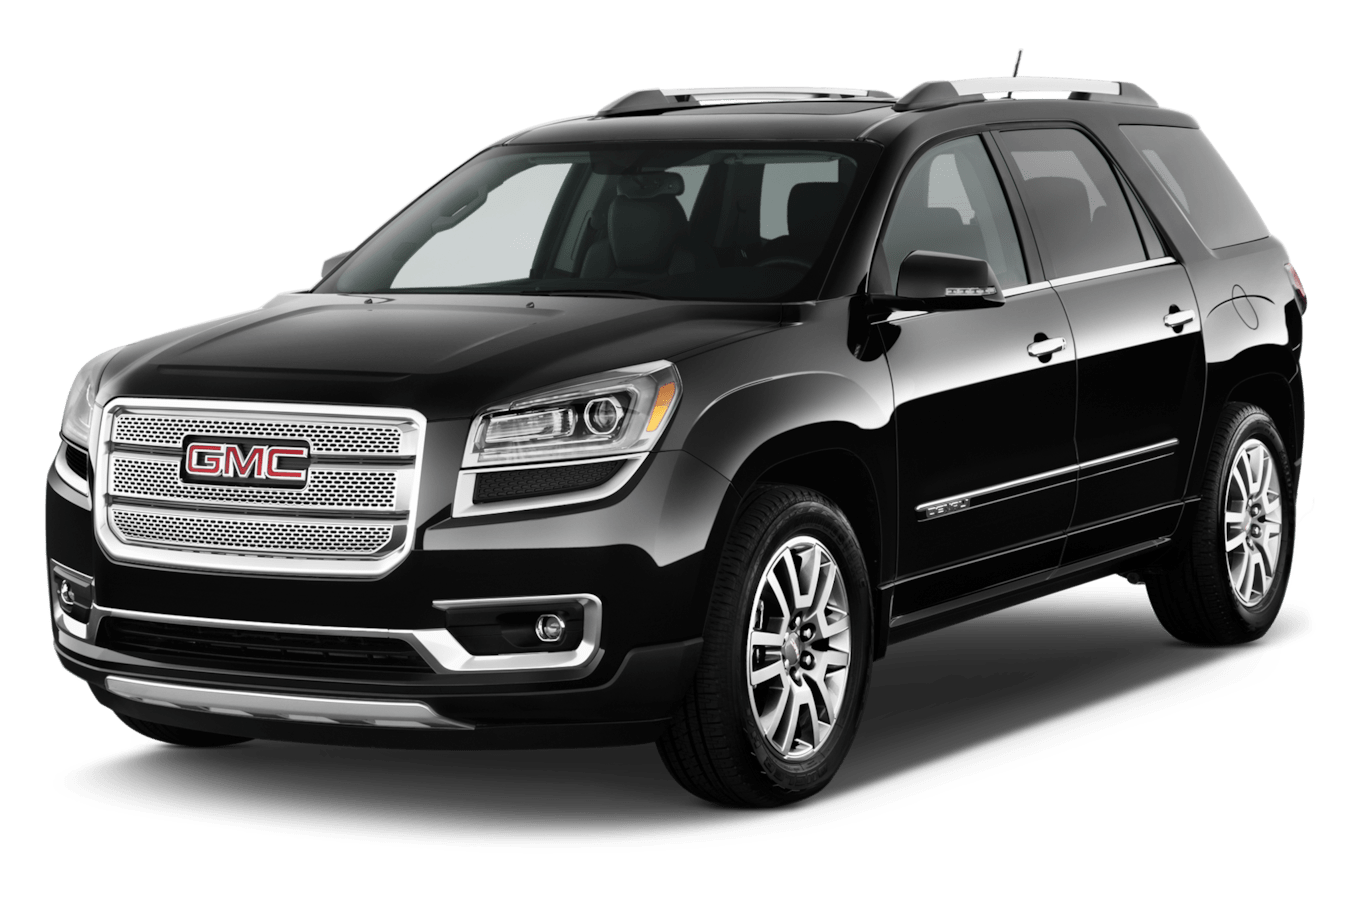 2015 GMC Acadia Reviews and Rating   Motor Trend 54   103